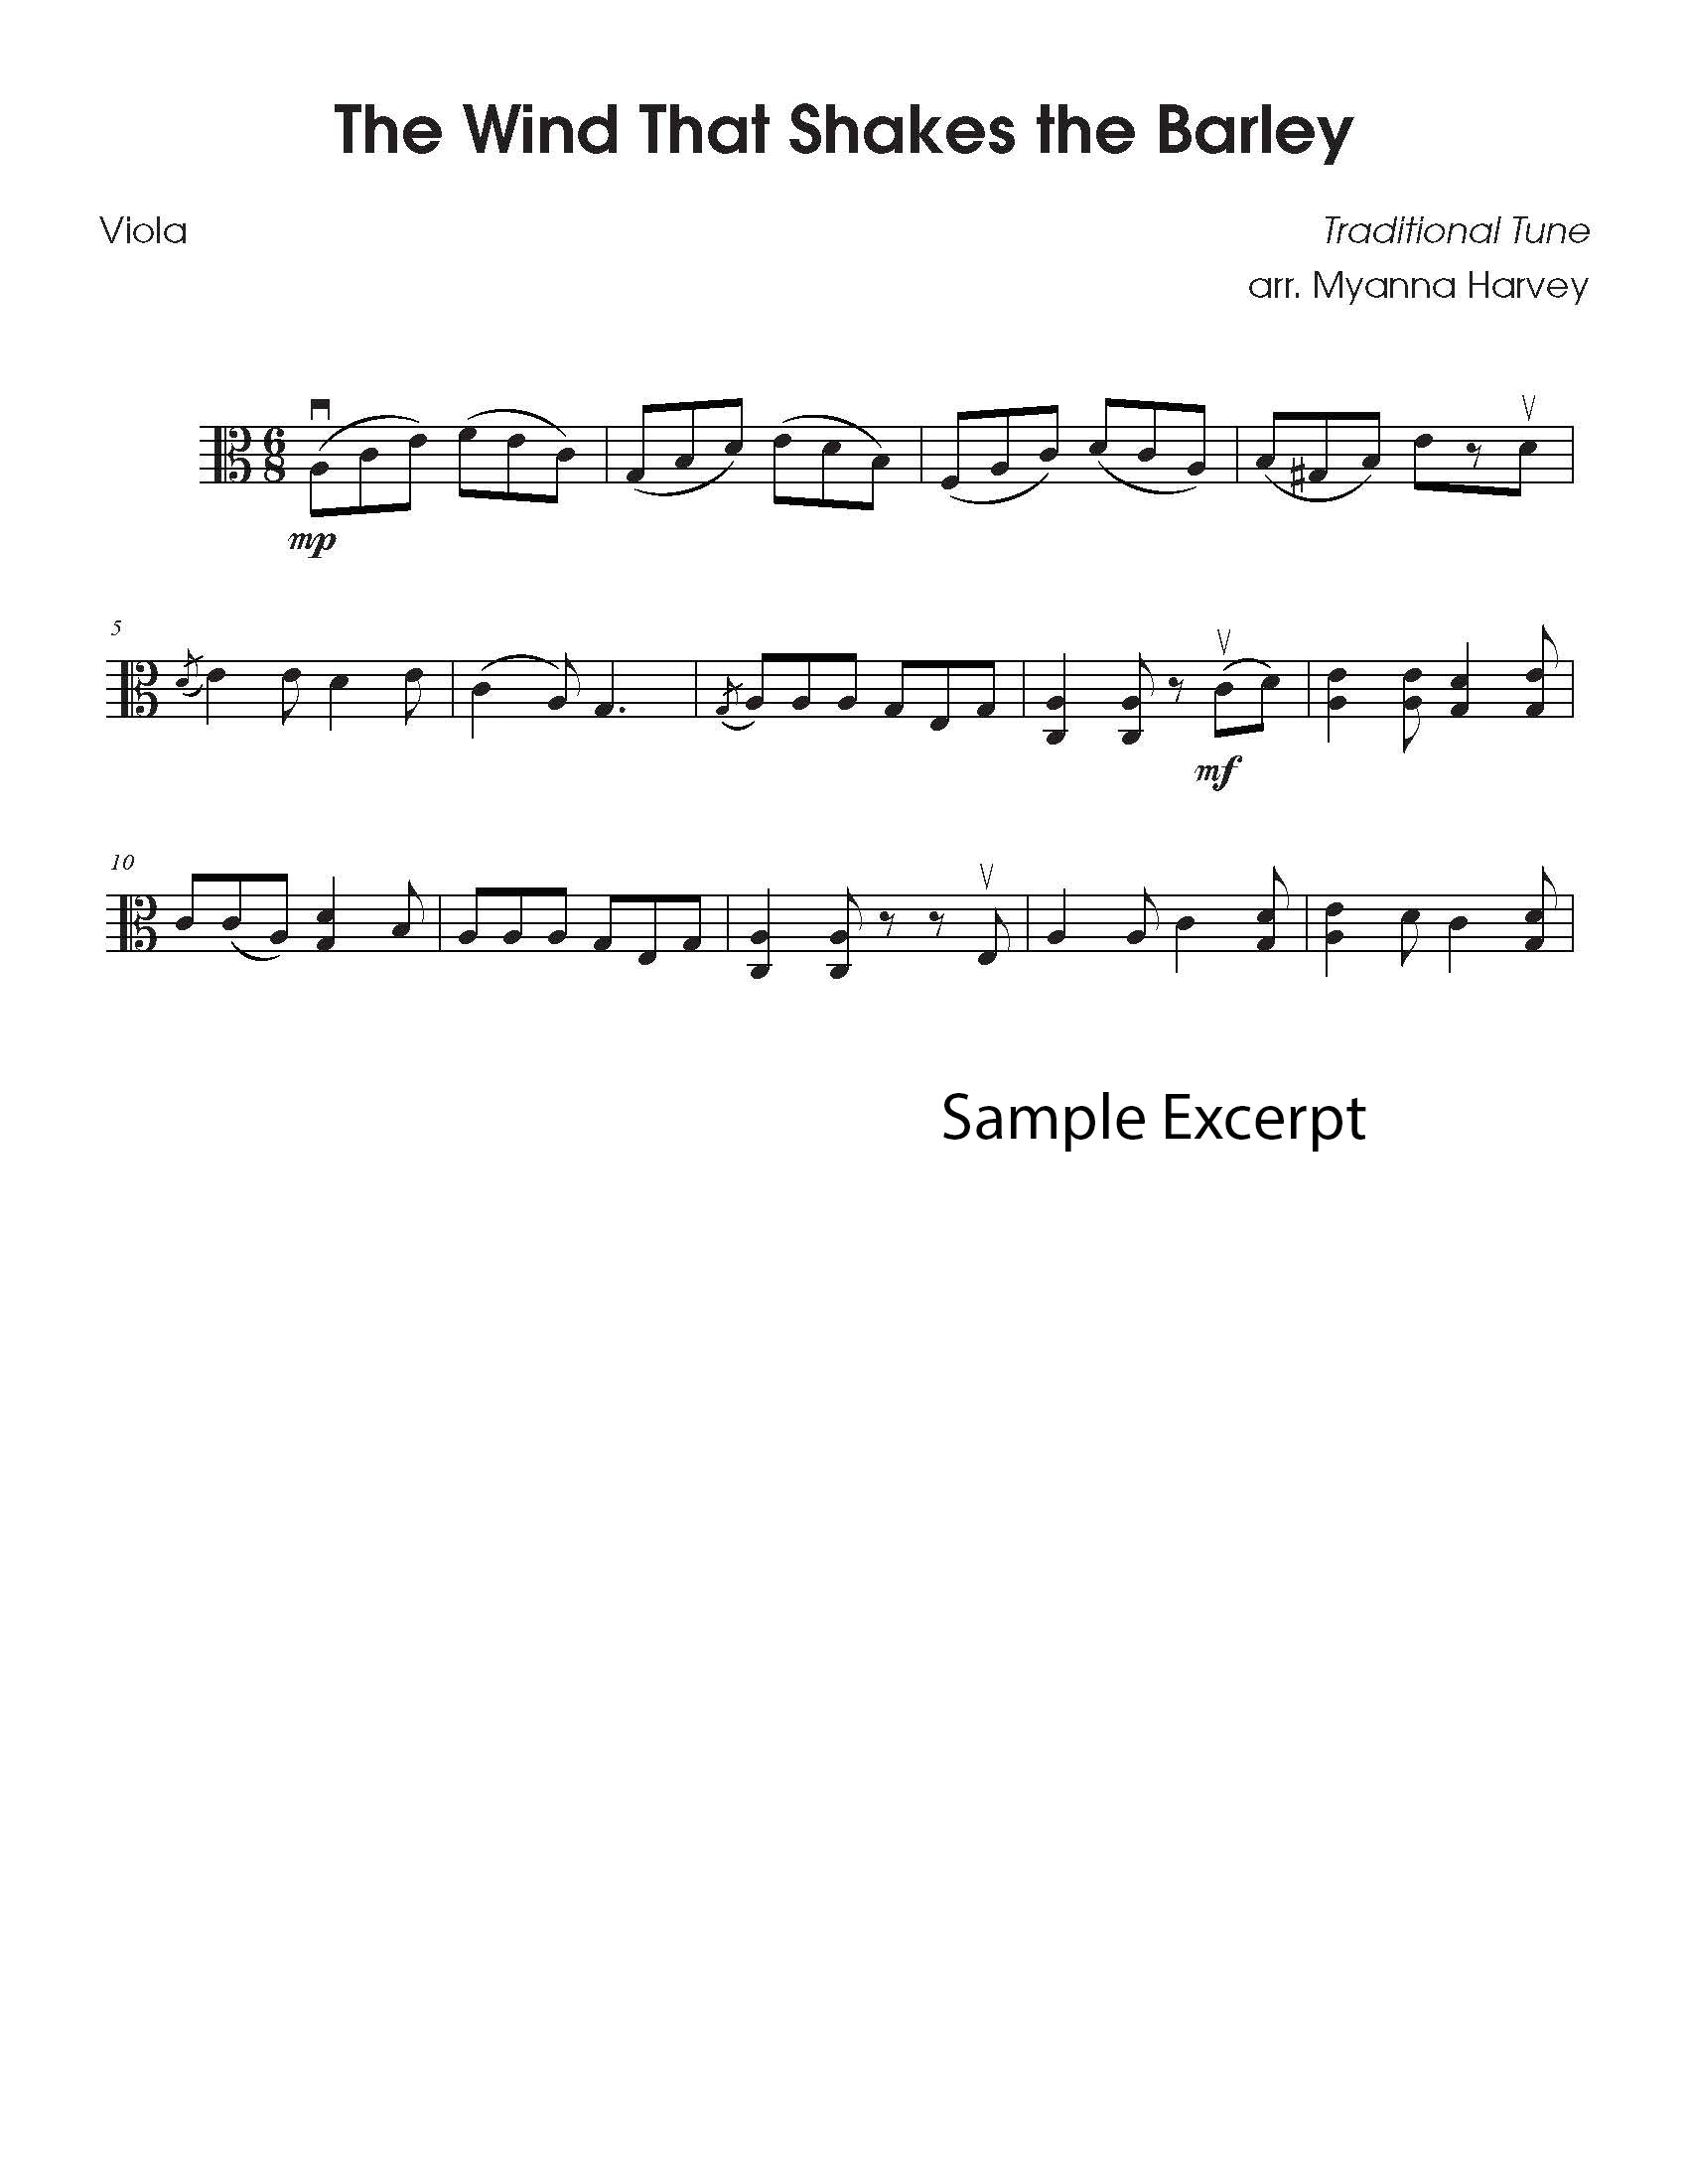 Solo viola fiddle tune sample page